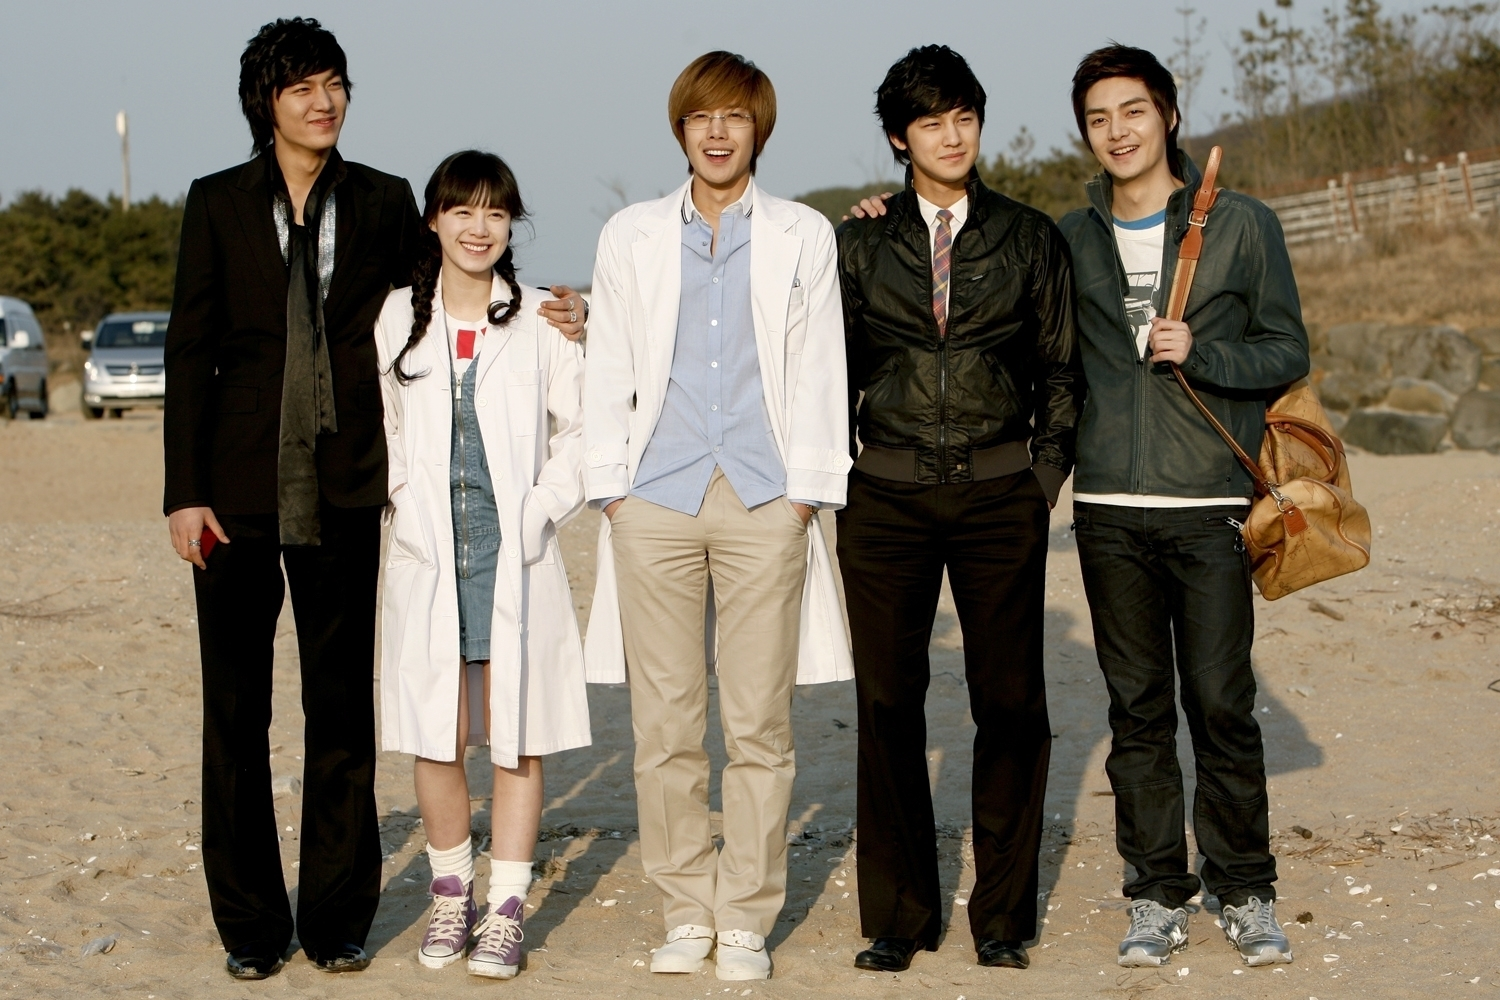 Boys over flowers - Boys Over Flowers Photo (6456638) - Fanpop ...boys over flowers